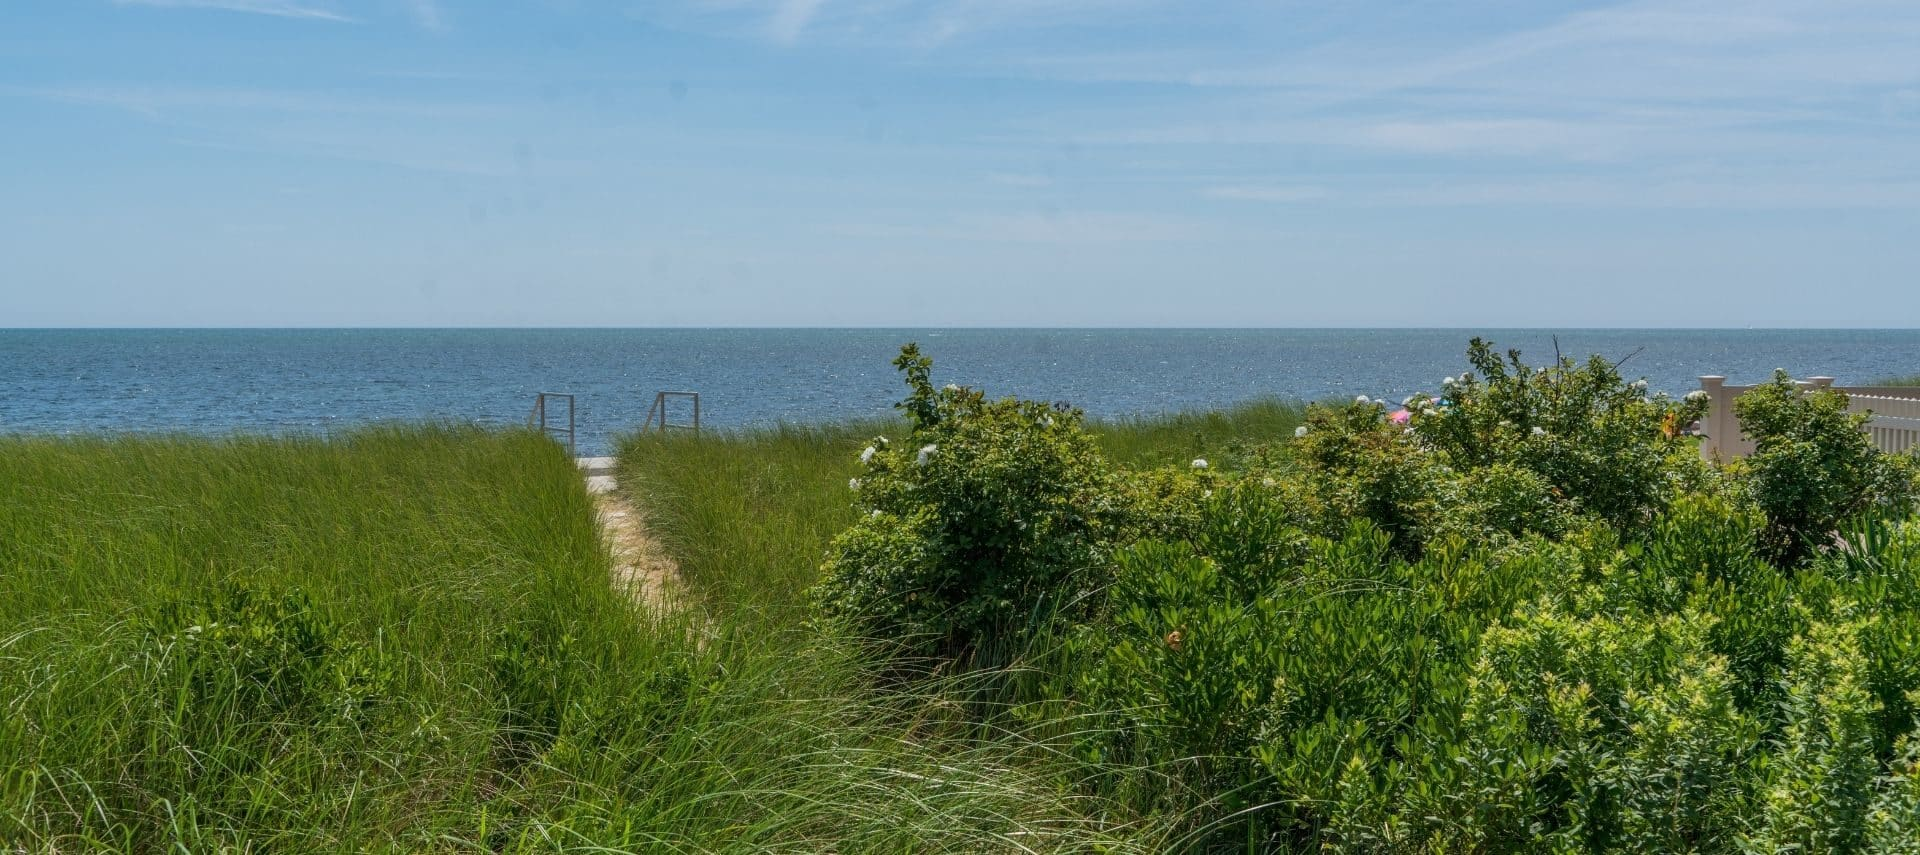 Grassy dunes against a blue backdrop of the Atlantic and the sky in Yarmouth MA